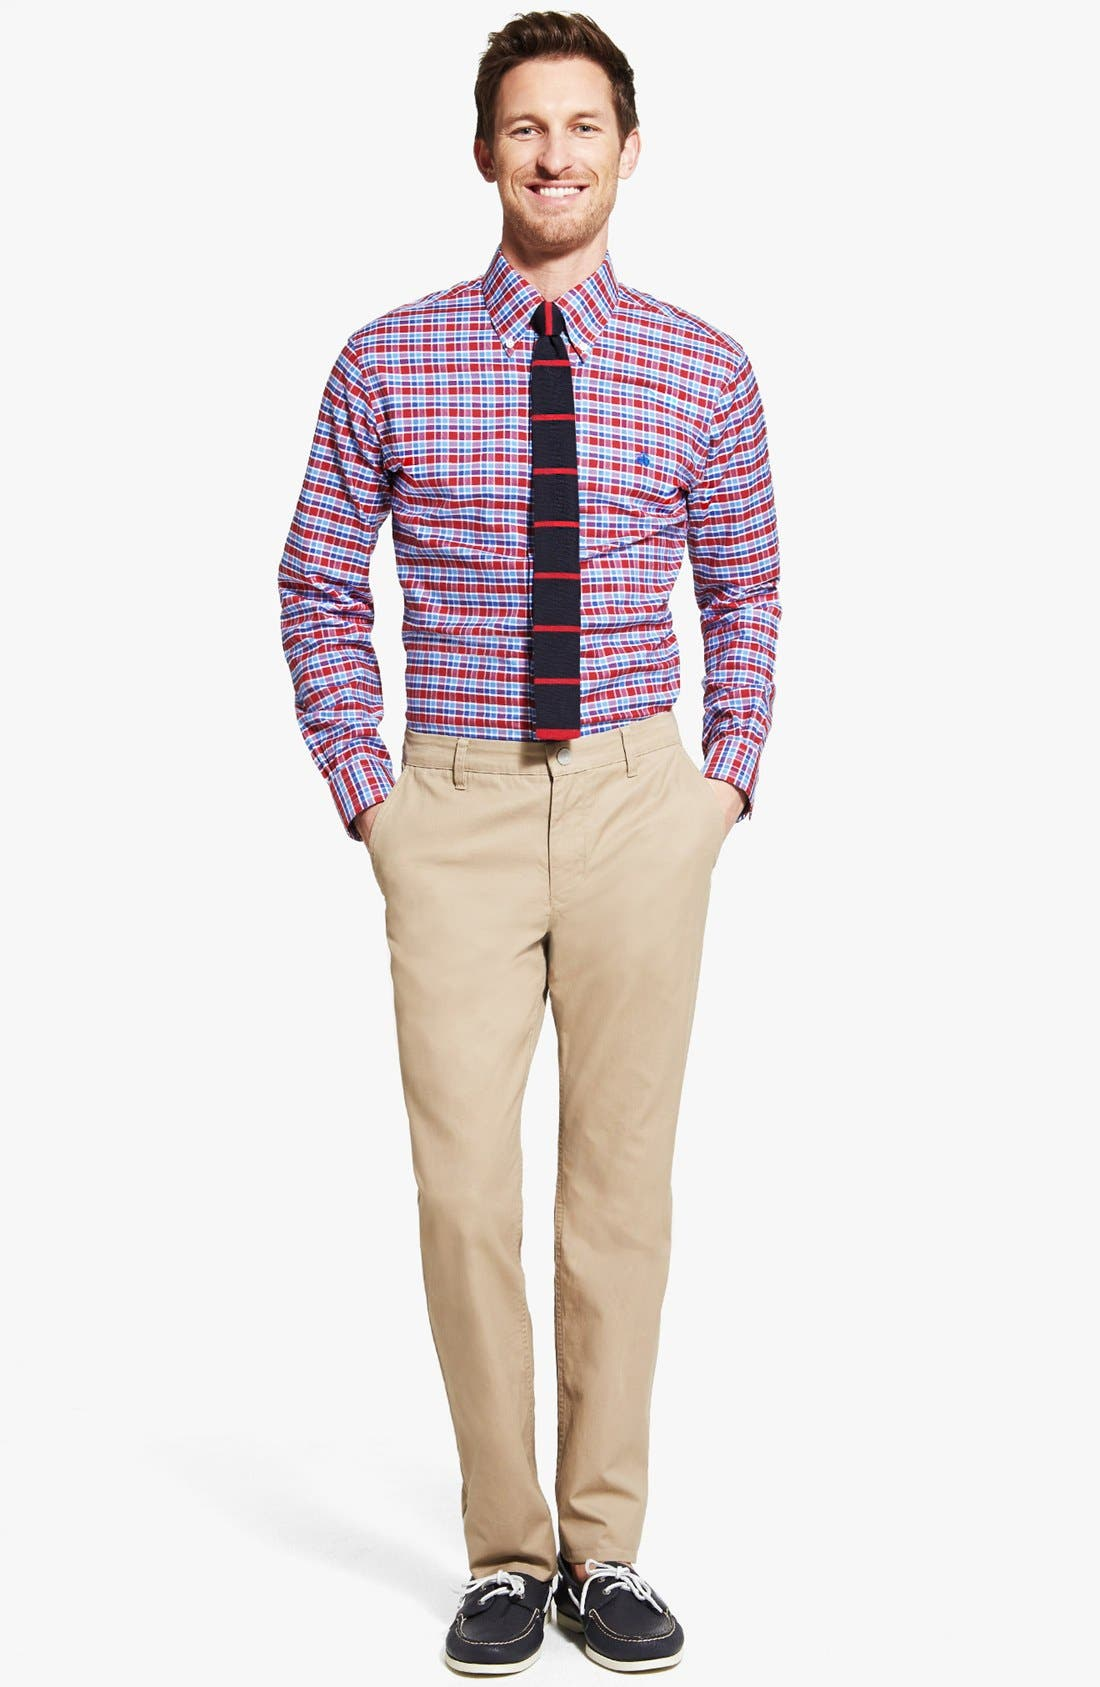 Main Image - Brooks Brothers Non-Iron Slim Fit Sport Shirt & Bonobos Washed Cotton Twill Chinos